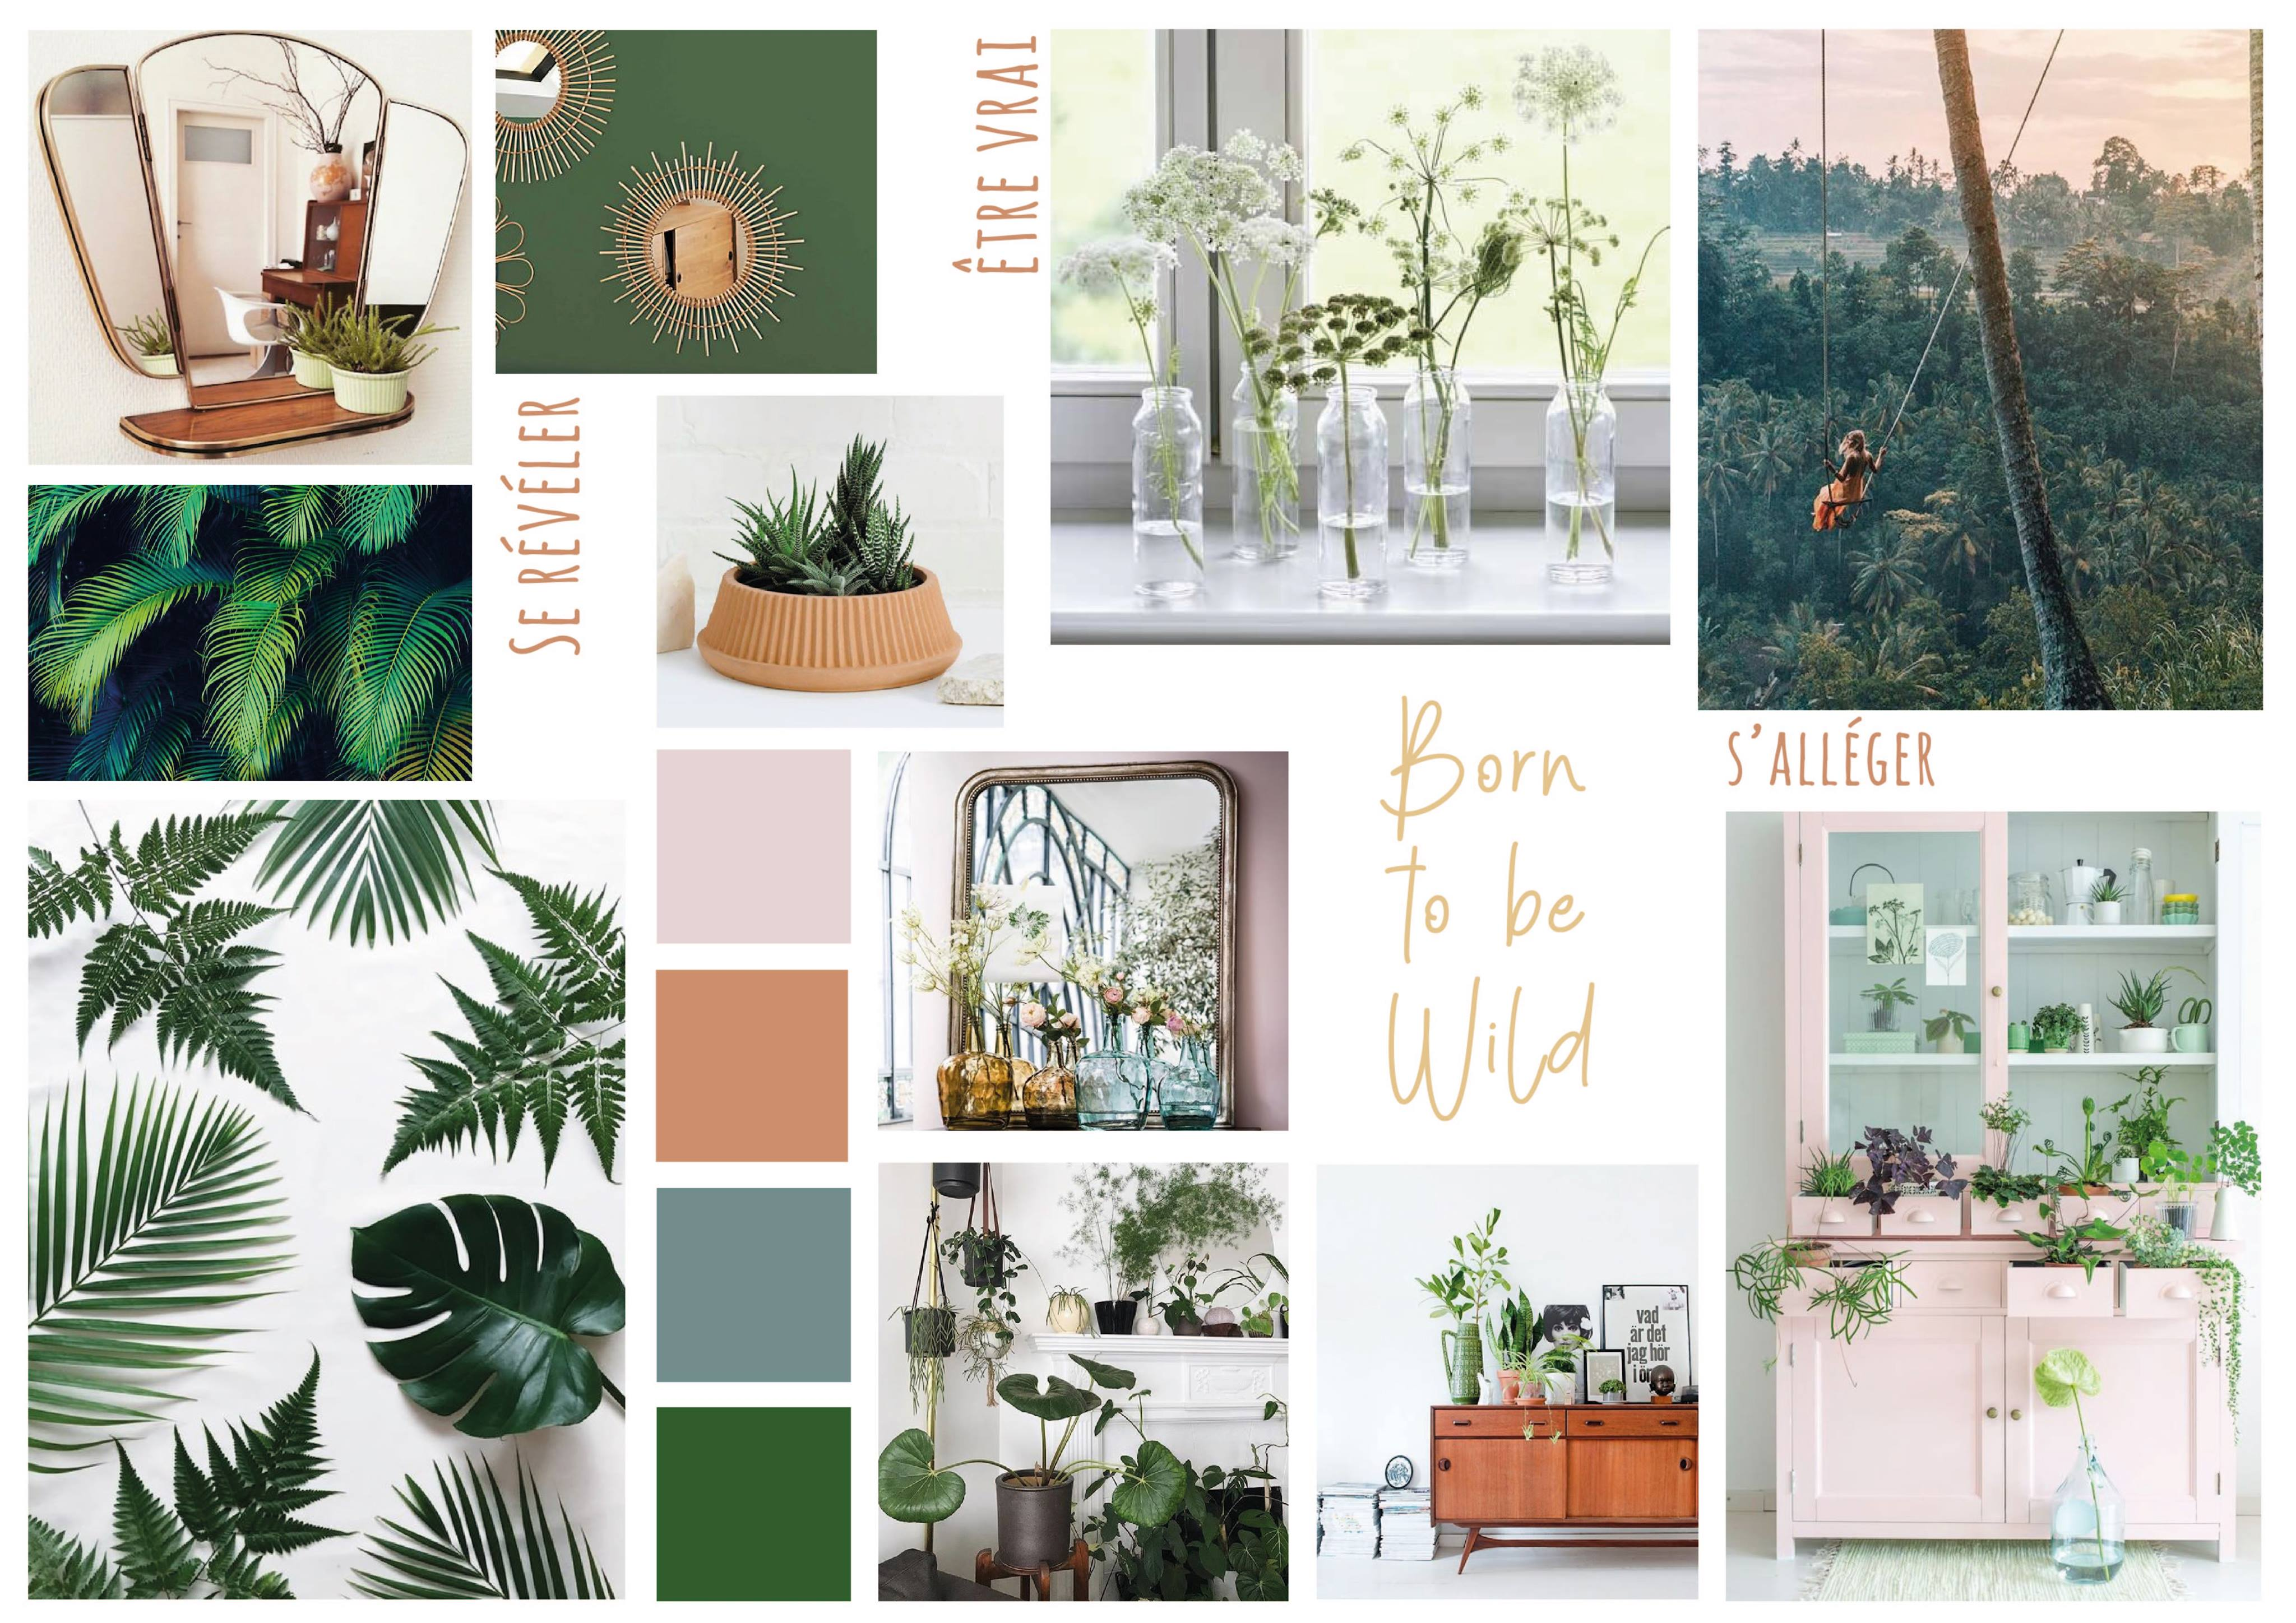 Moodboard born to be wild